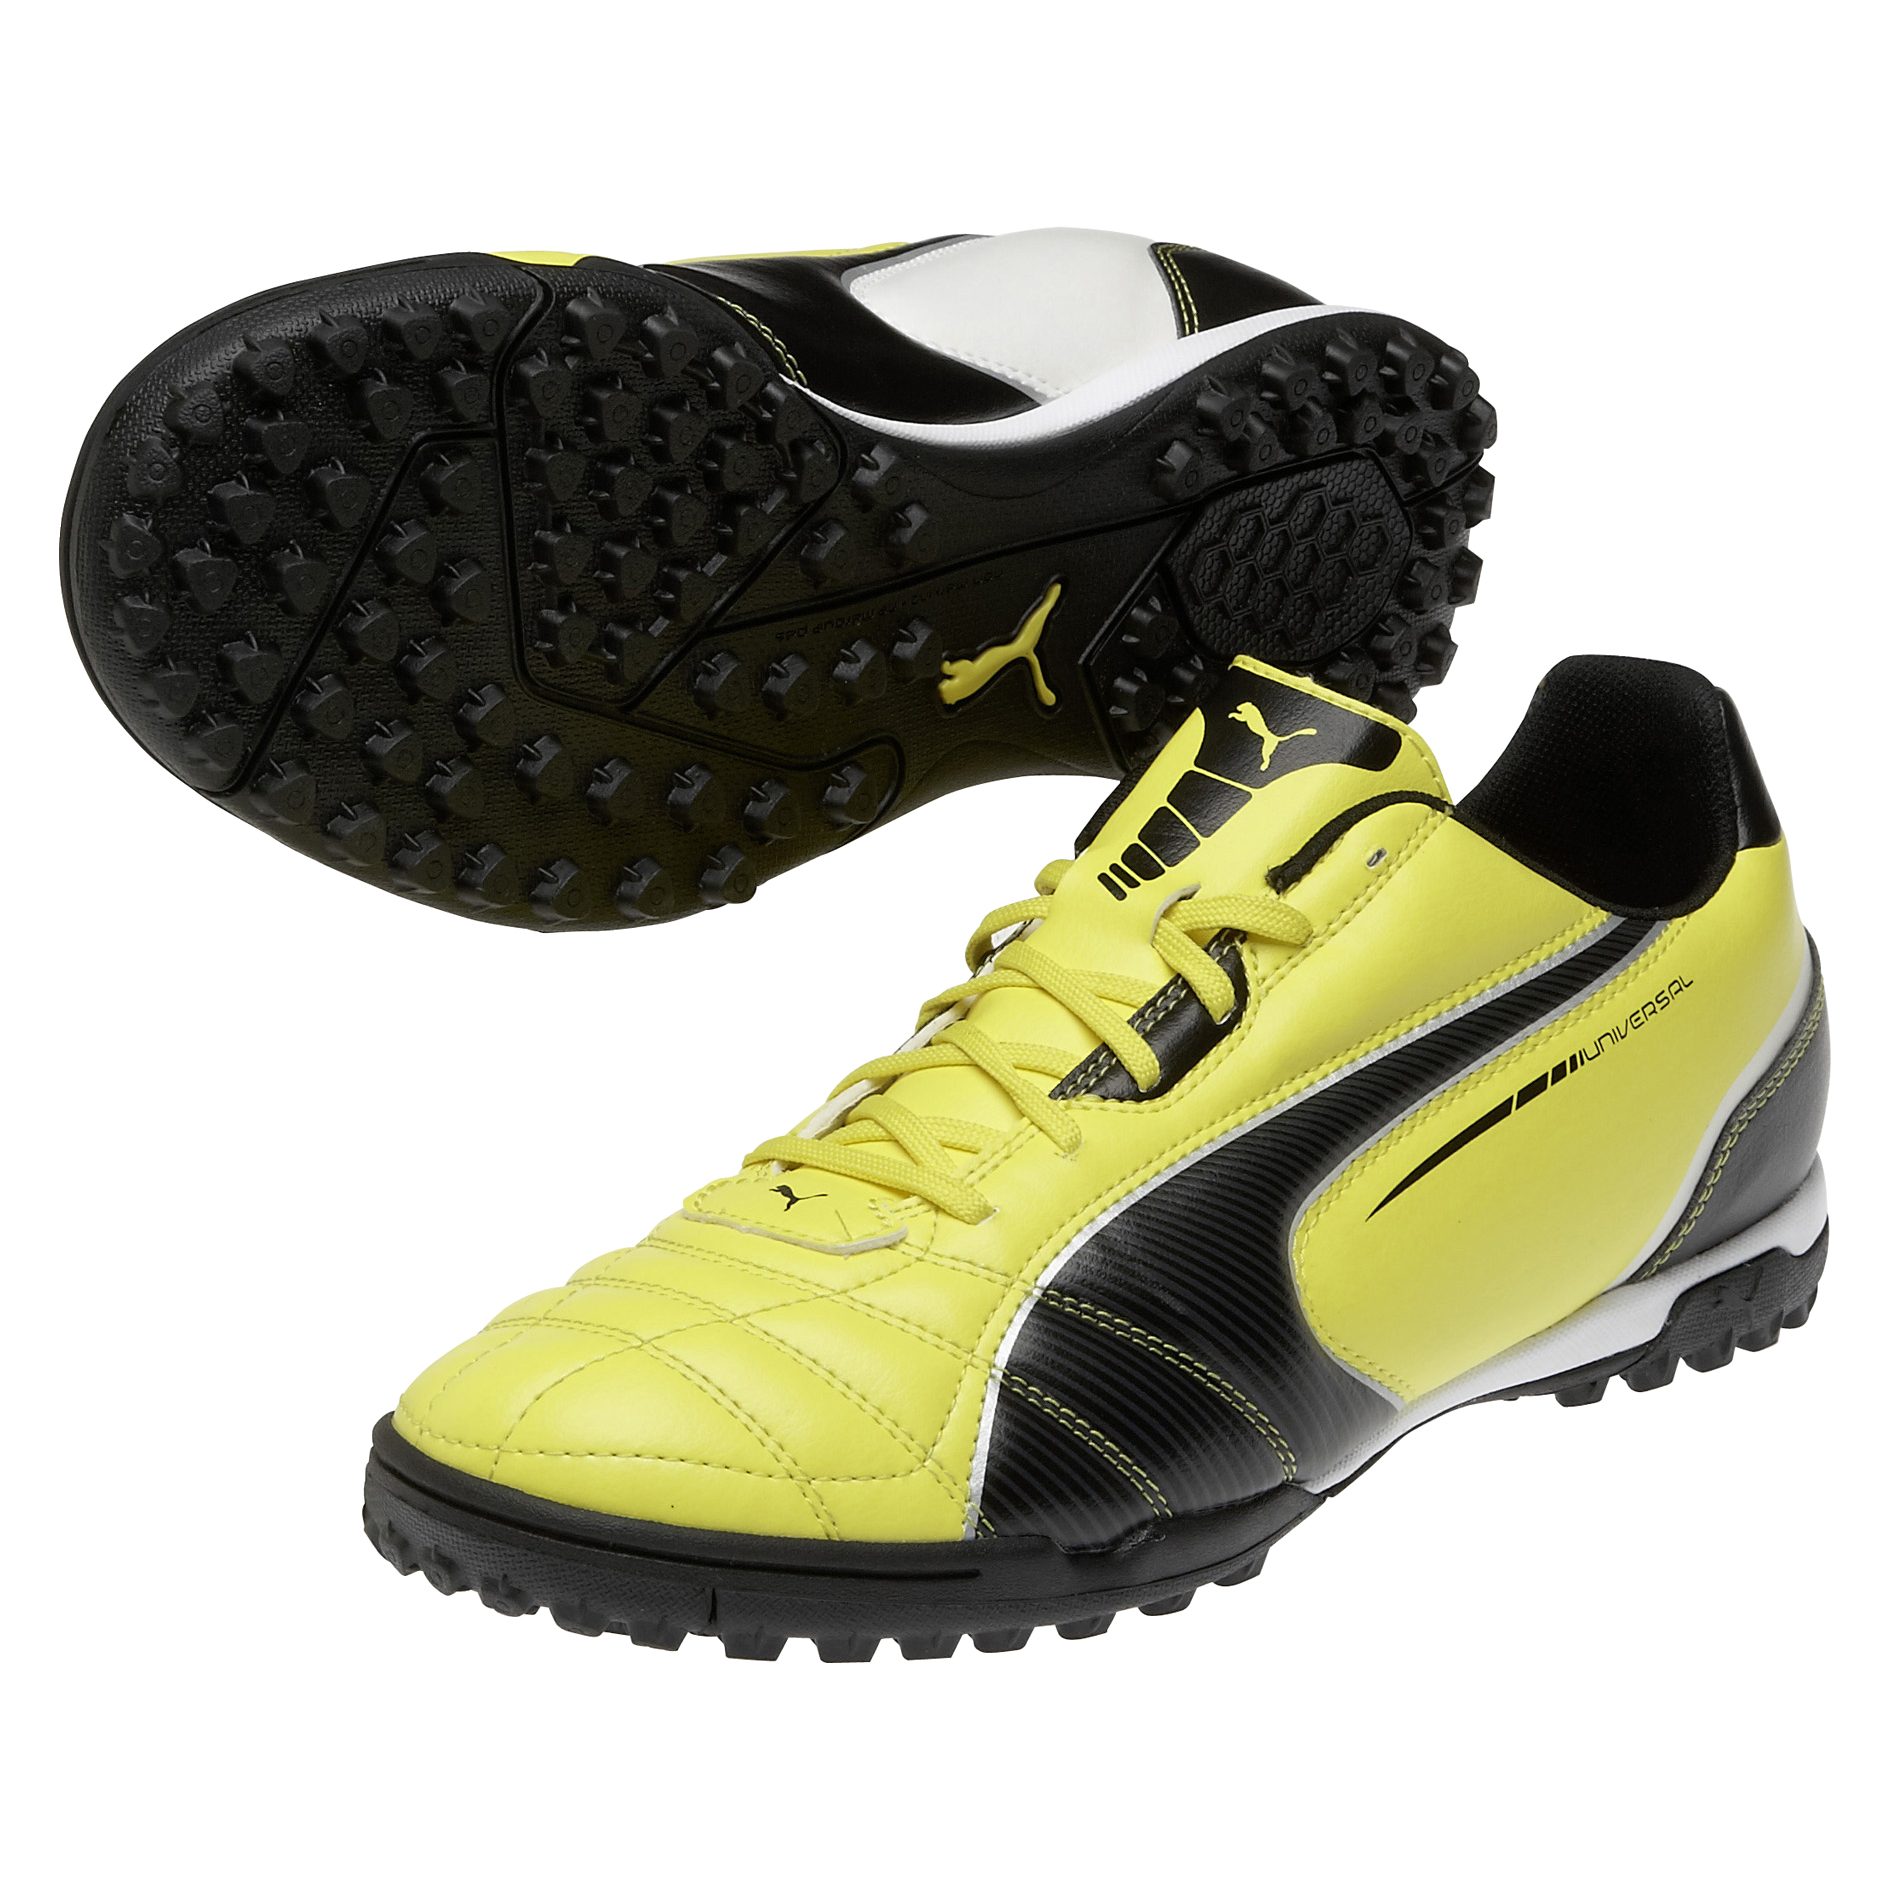 Puma Universal Astroturf Trainers - Blazing Yellow/Black/White